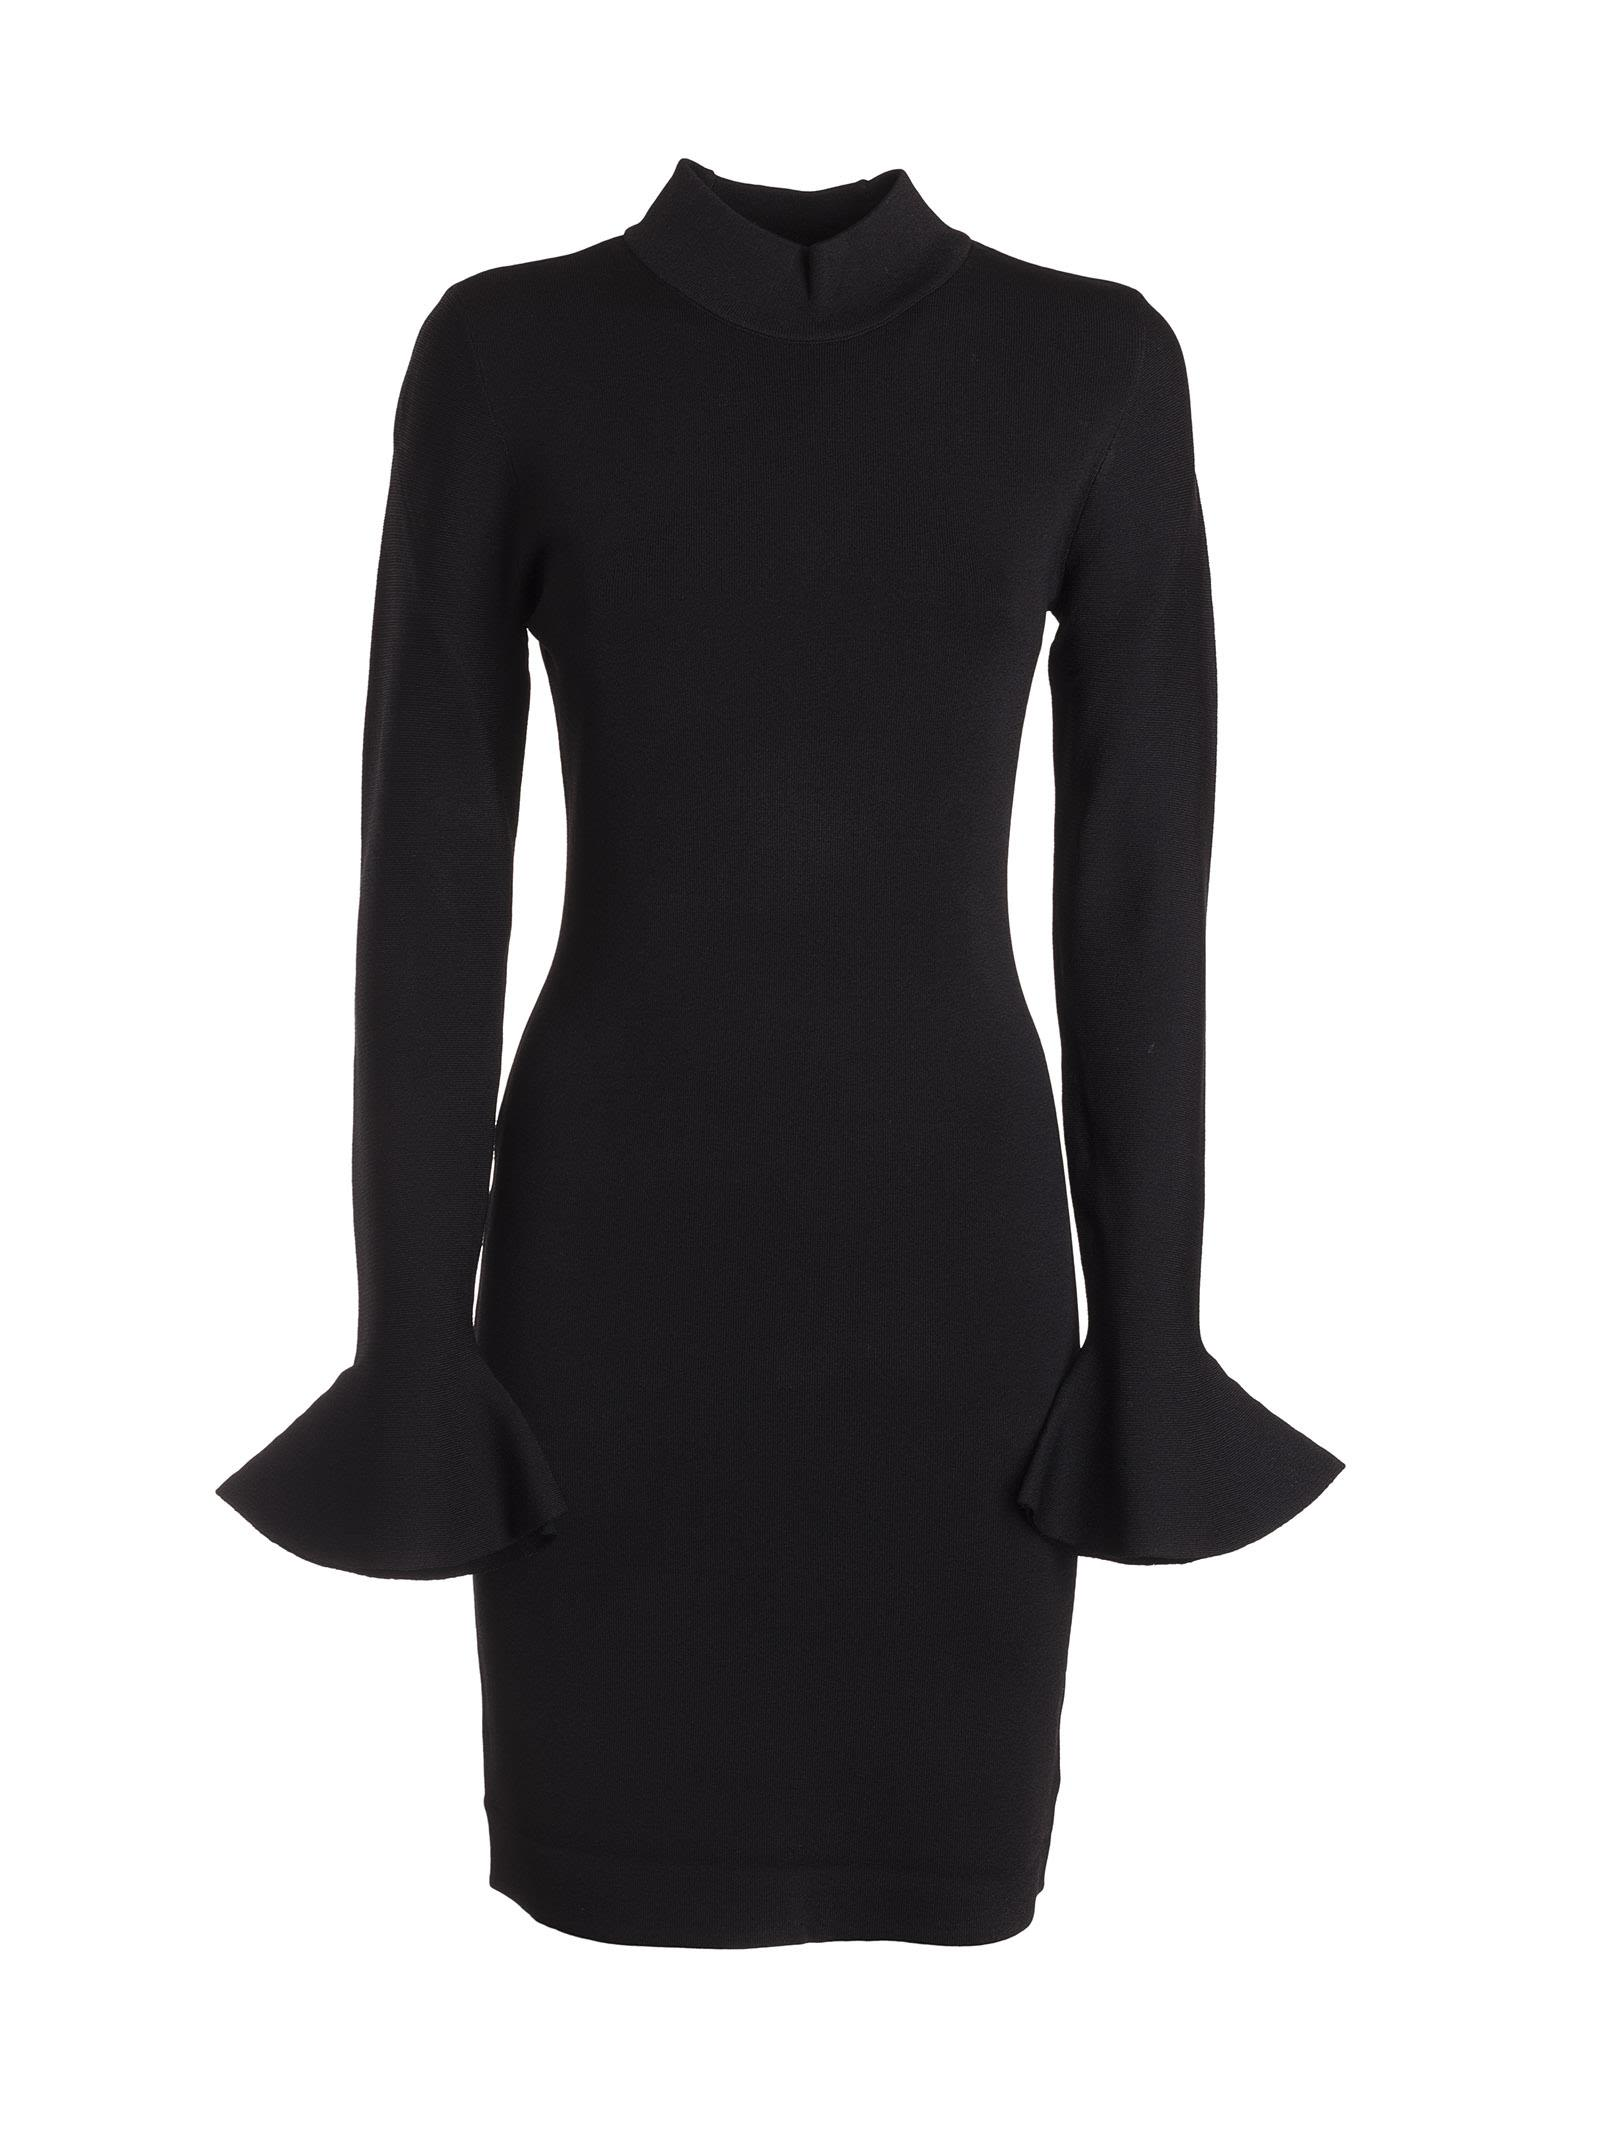 Michael Kors Flared Cuffs Dress